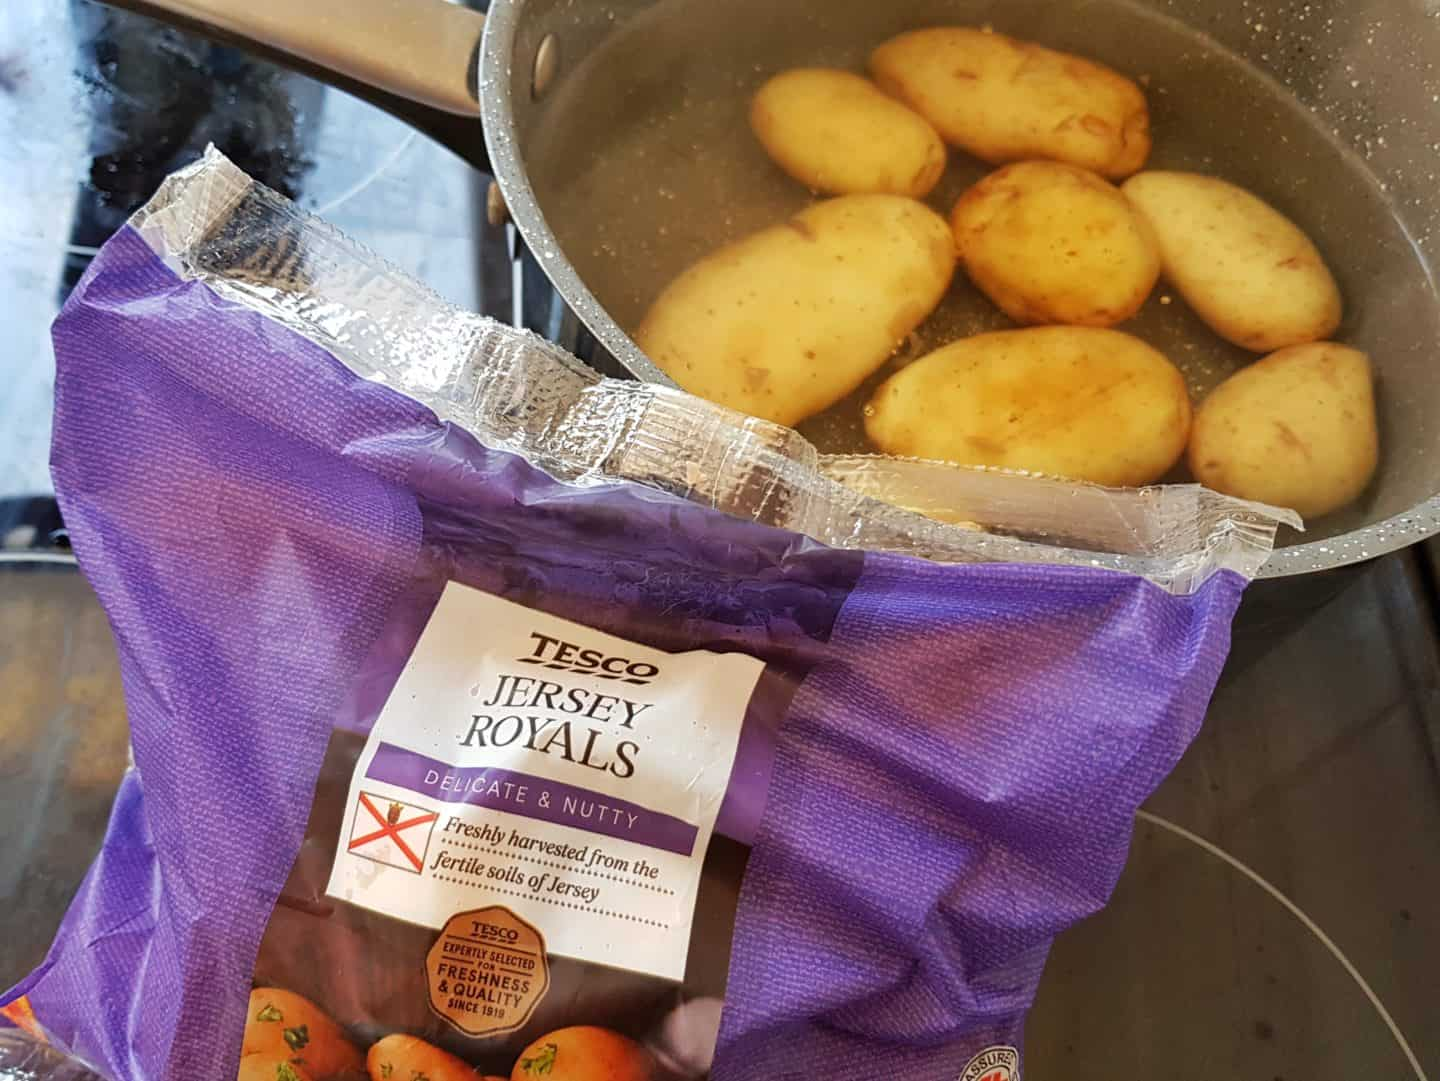 Jersey Royal New Potatoes in packaging next to pan containing potatoes